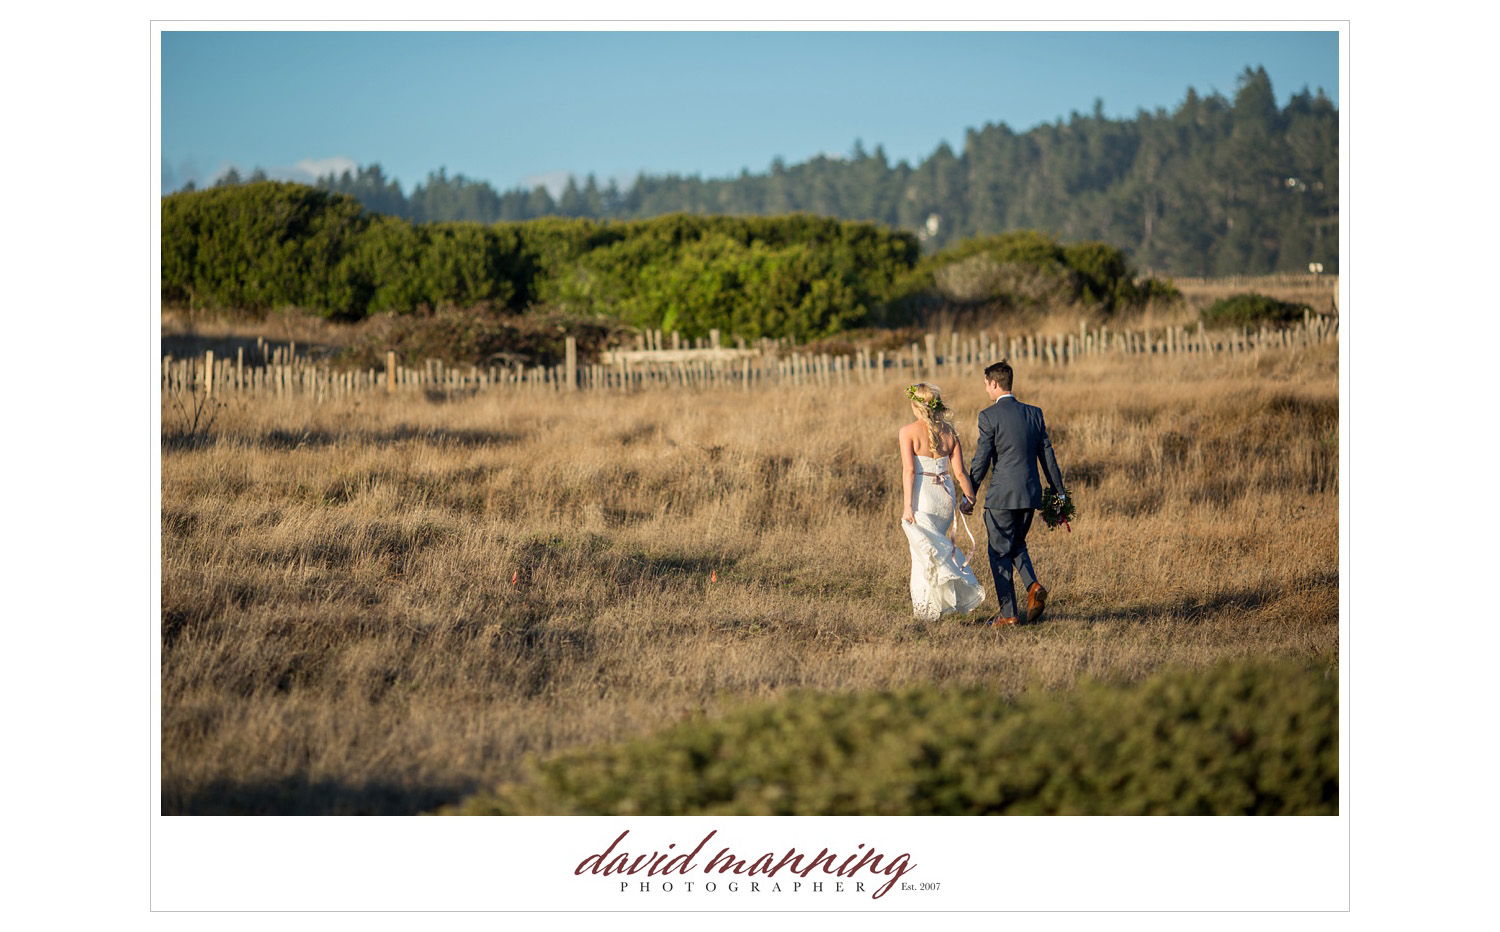 Sea-Ranch-Sonoma-Destination-Wedding-David-Manning-Photographers-141101-0040.jpg